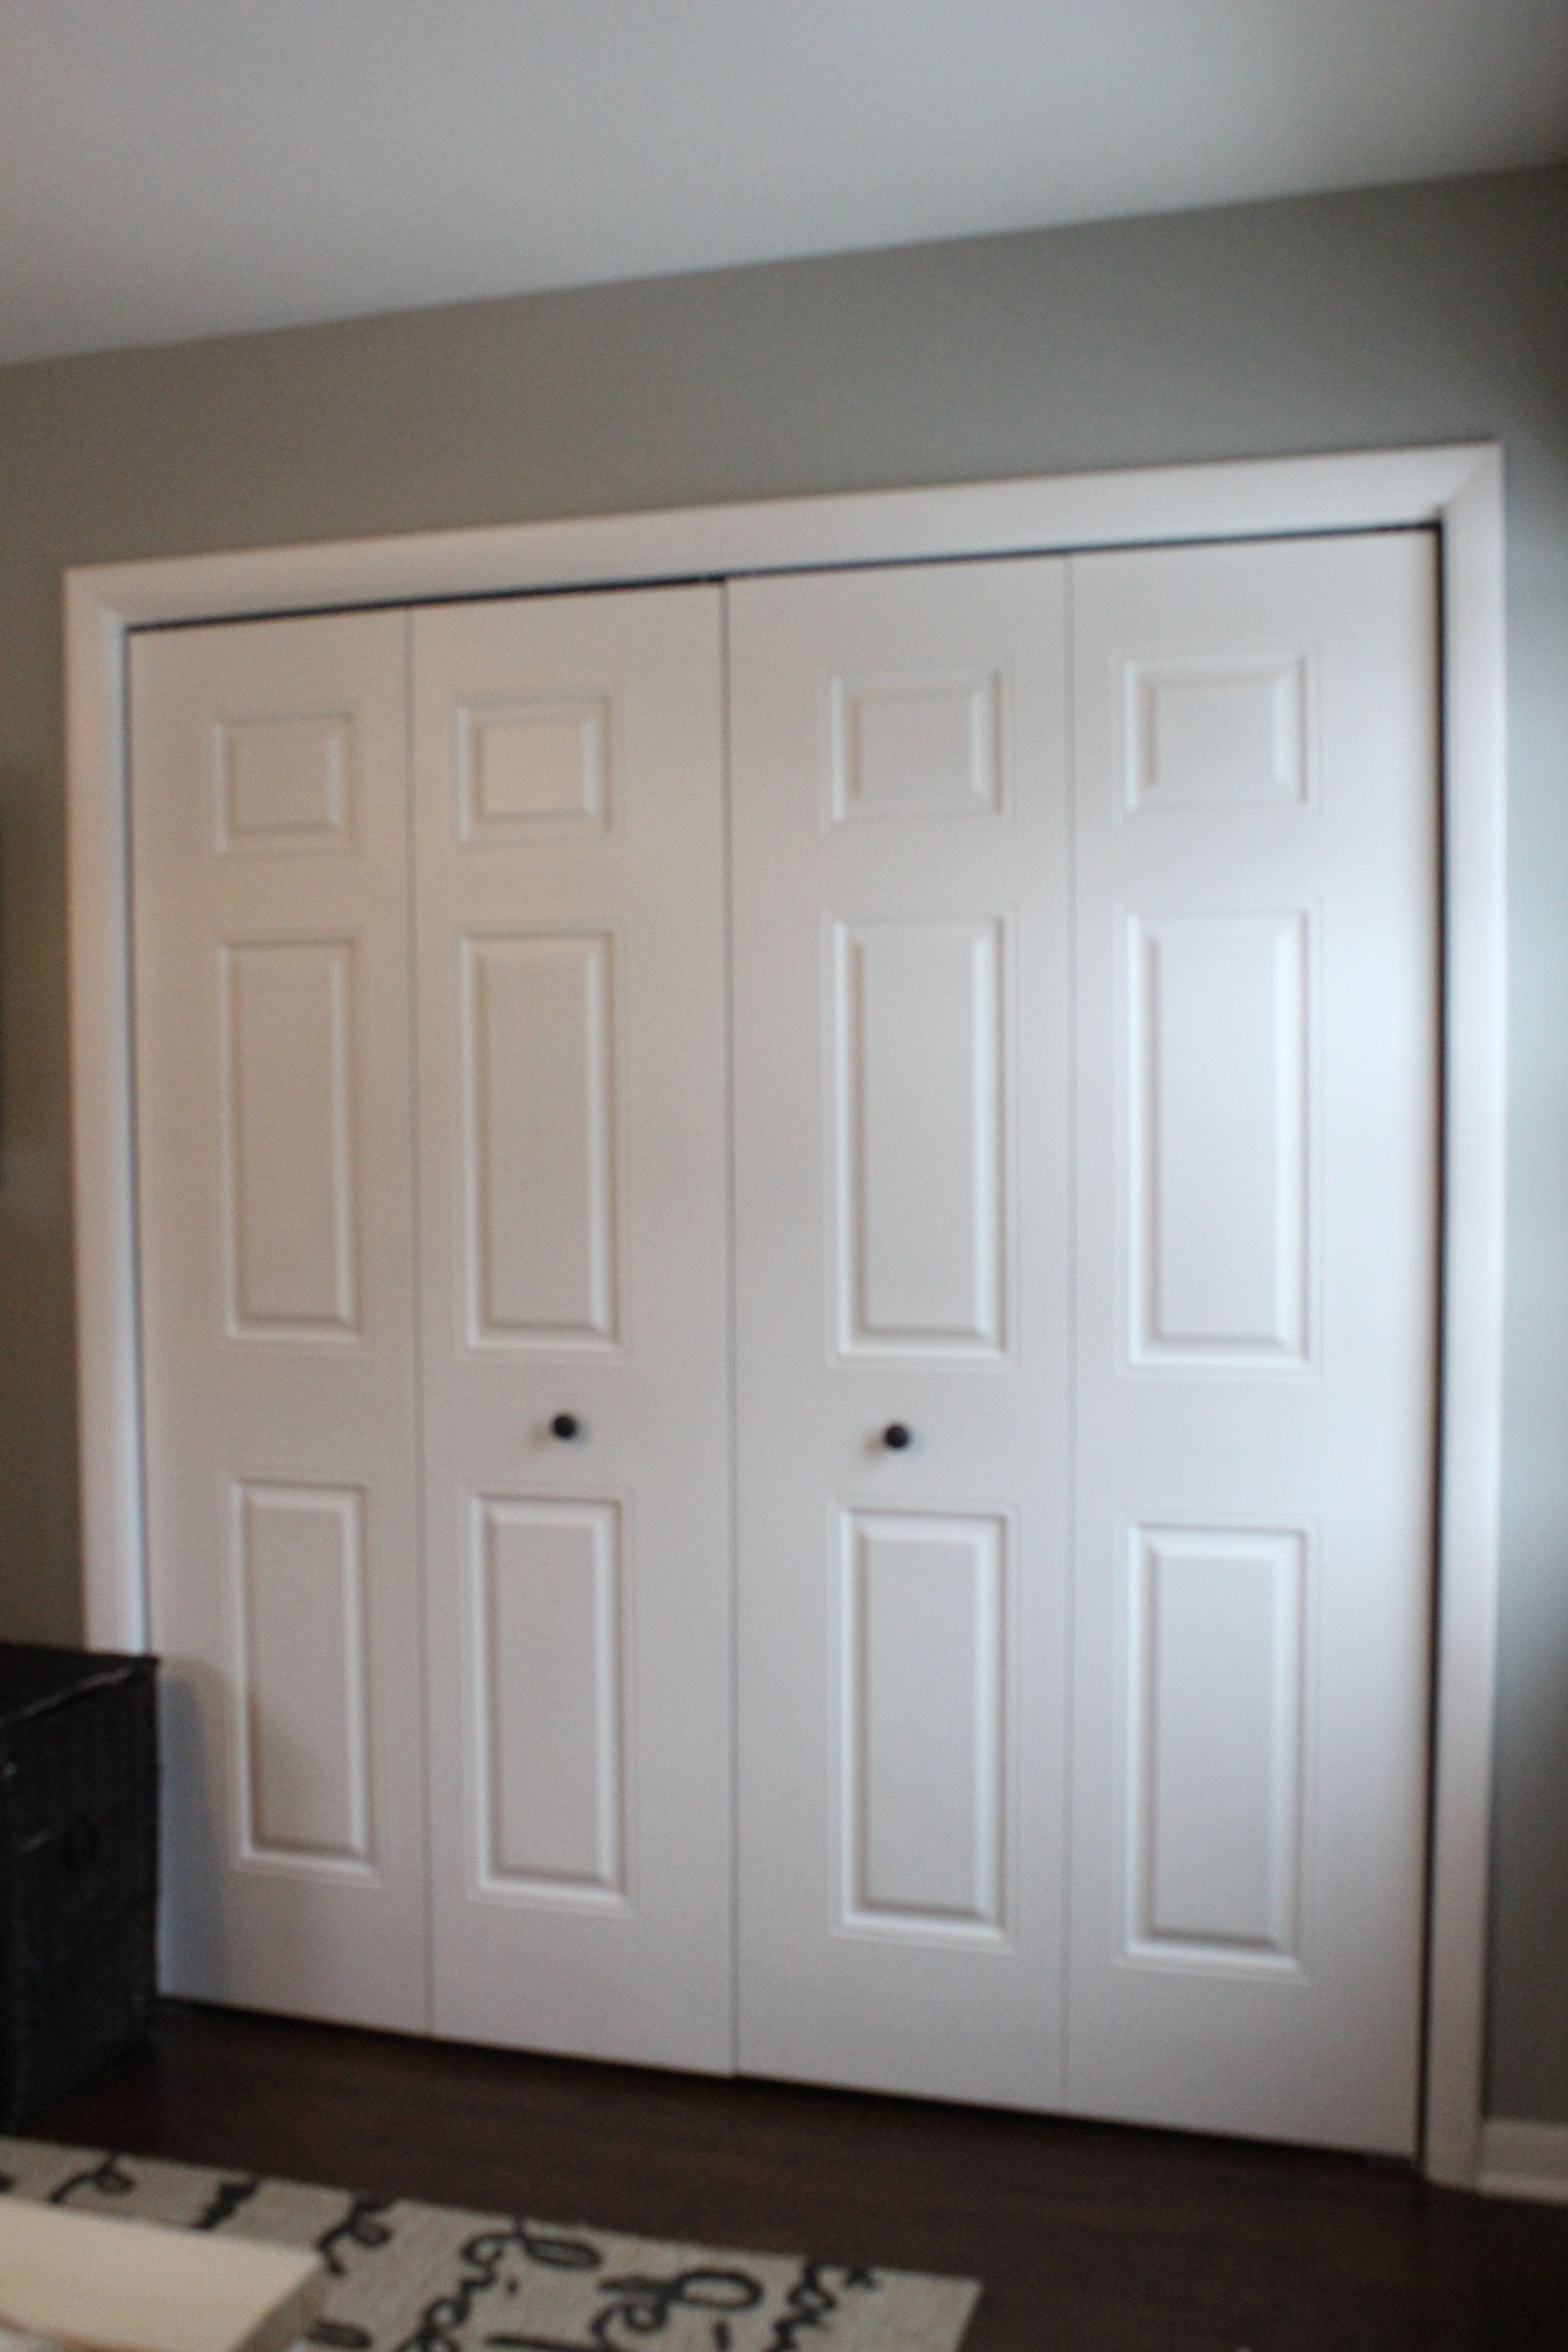 Furniture,Fashionable Bamboo Closet Door Ideas With Nice White Teak Wood  Door Frame Material And